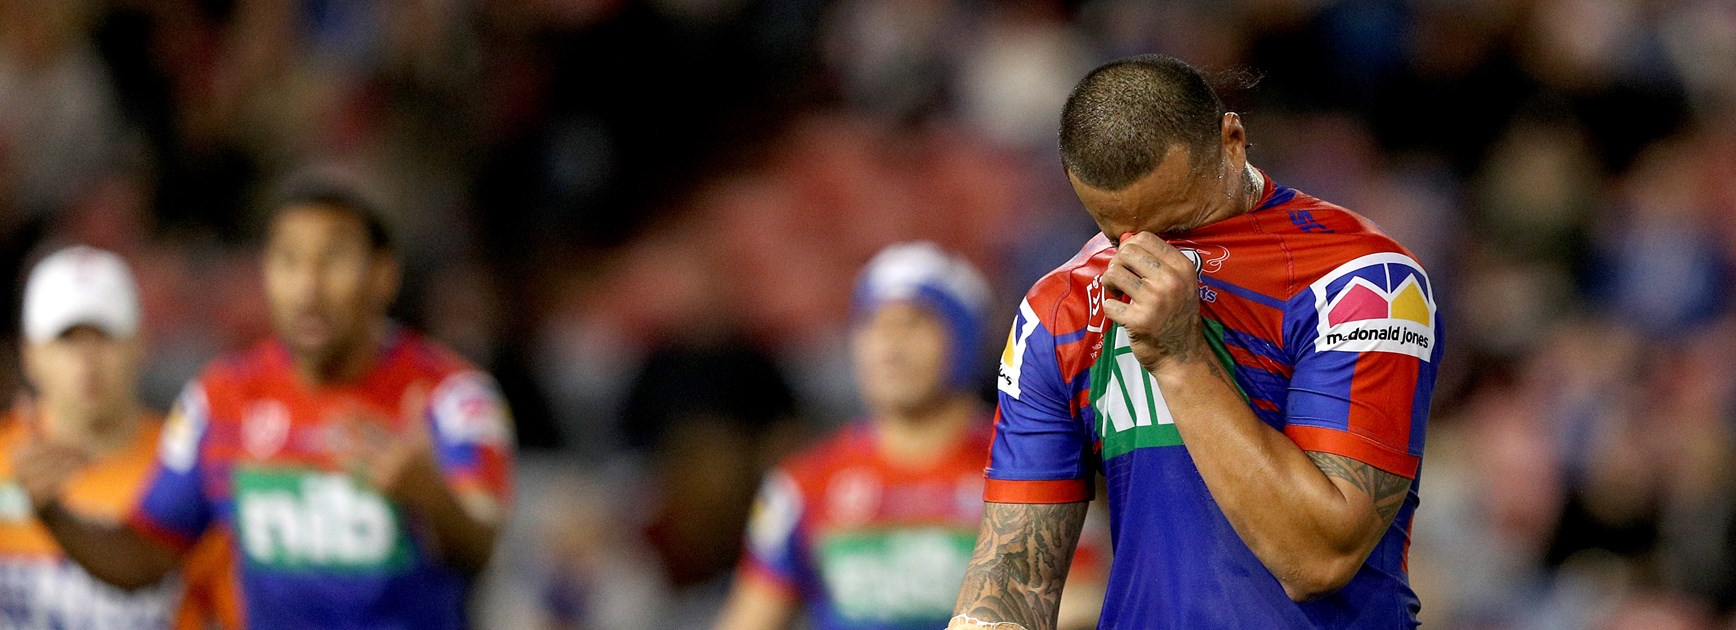 Gavet's emotional farewell to the NRL